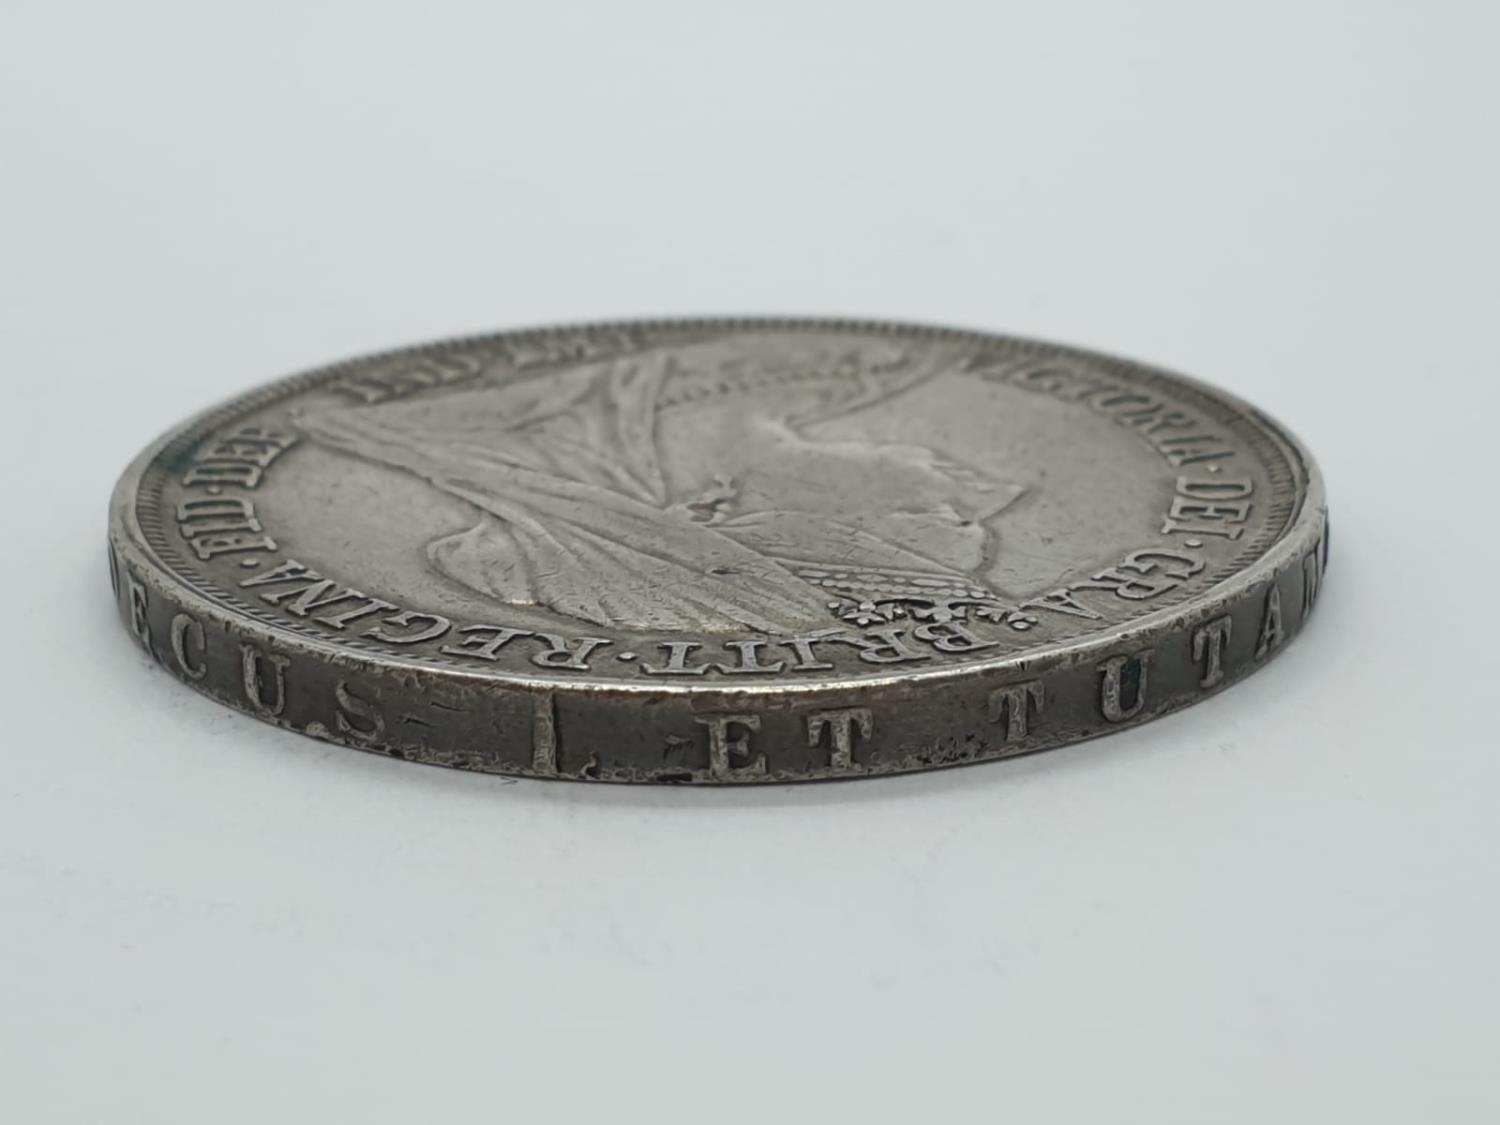 1893 Victorian silver crown - Image 4 of 5